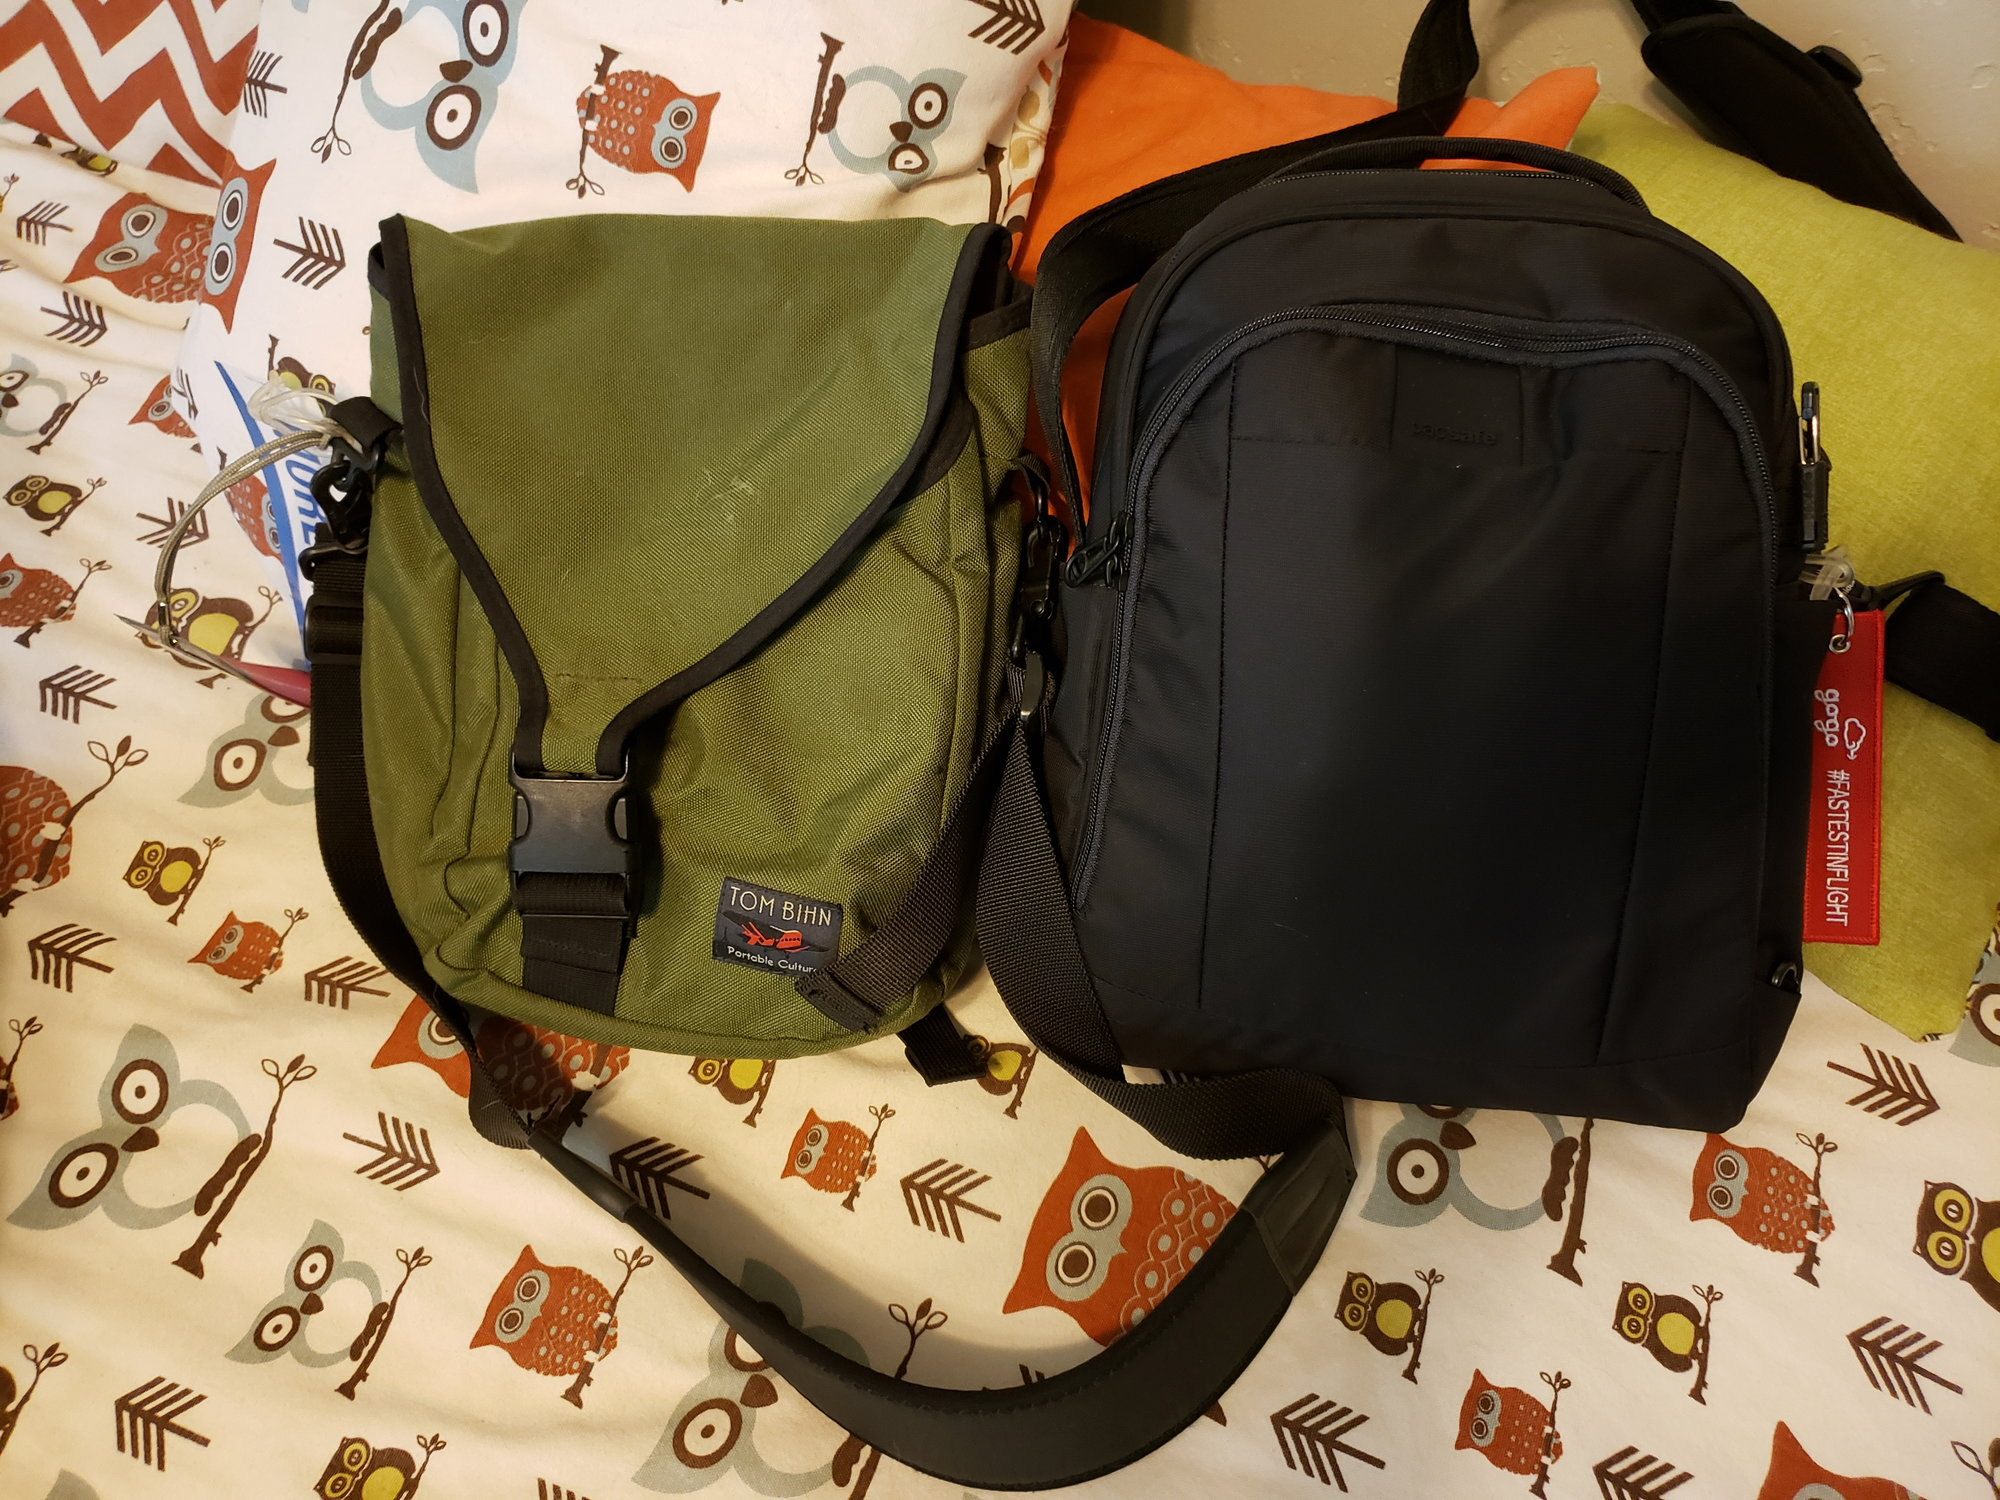 Opinions On Secure Bags Eg Pacsafe And Travelon Flyertalk Forums Security Zipper Lock Portable Mini Padlock For I Have An Original Tom Bihn Ristreto From 2010 That Got With My First Ipad It Fit The But Not Too Much Else Once Quart Liquid Bag Some Chargers